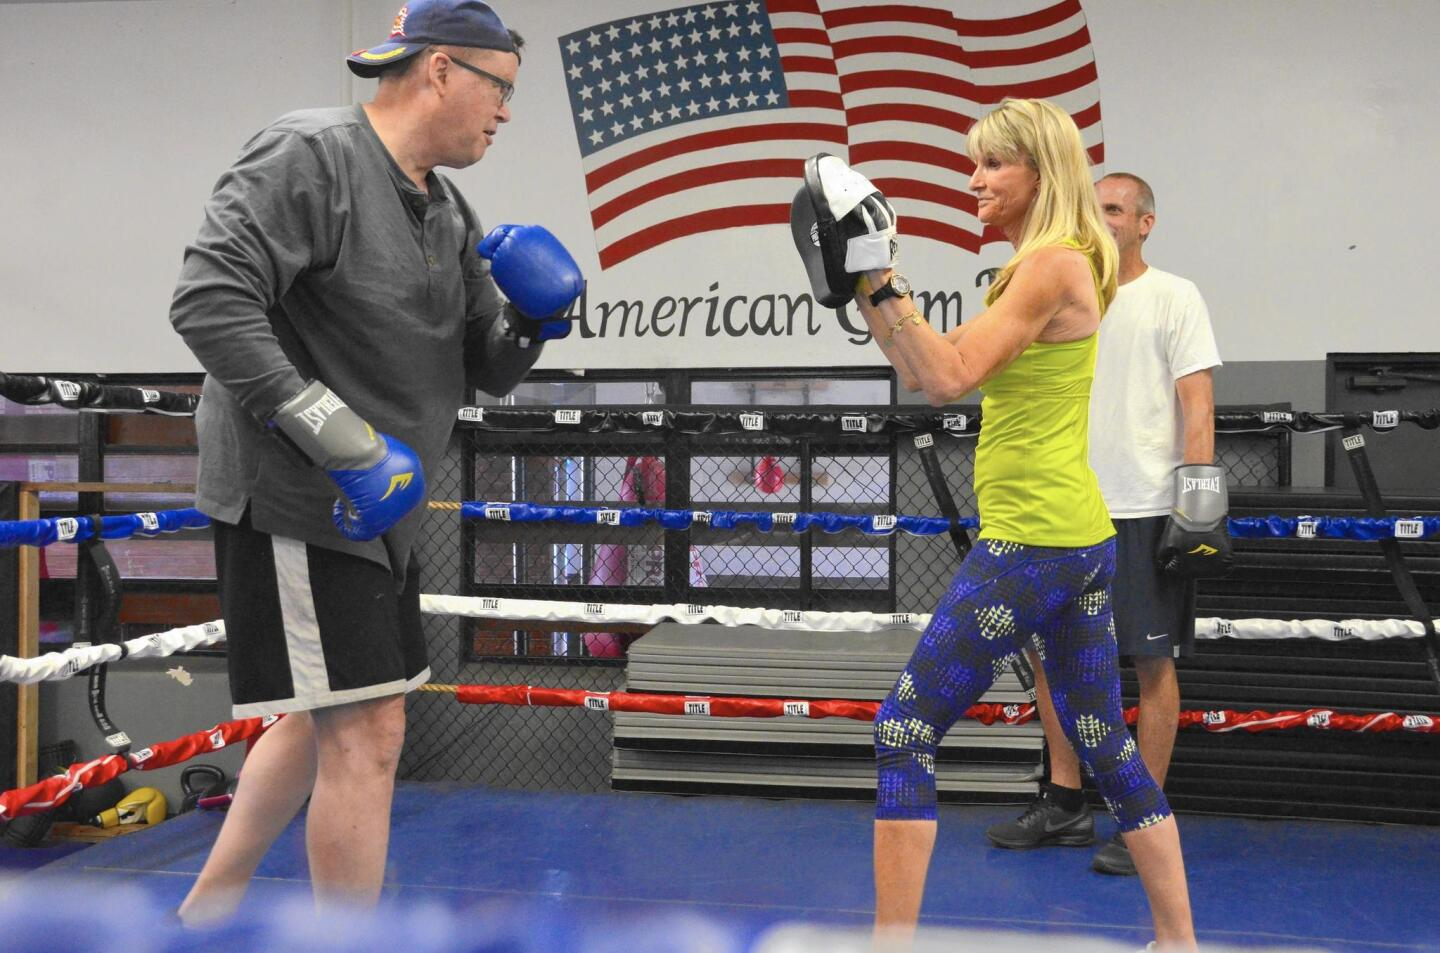 Parkinson's patient Gary Cragin takes a turn in the ring with certified personal trainer Anne Adams at American Gym in Costa Mesa, where Adams started California's first Rock Steady Boxing program four years ago.